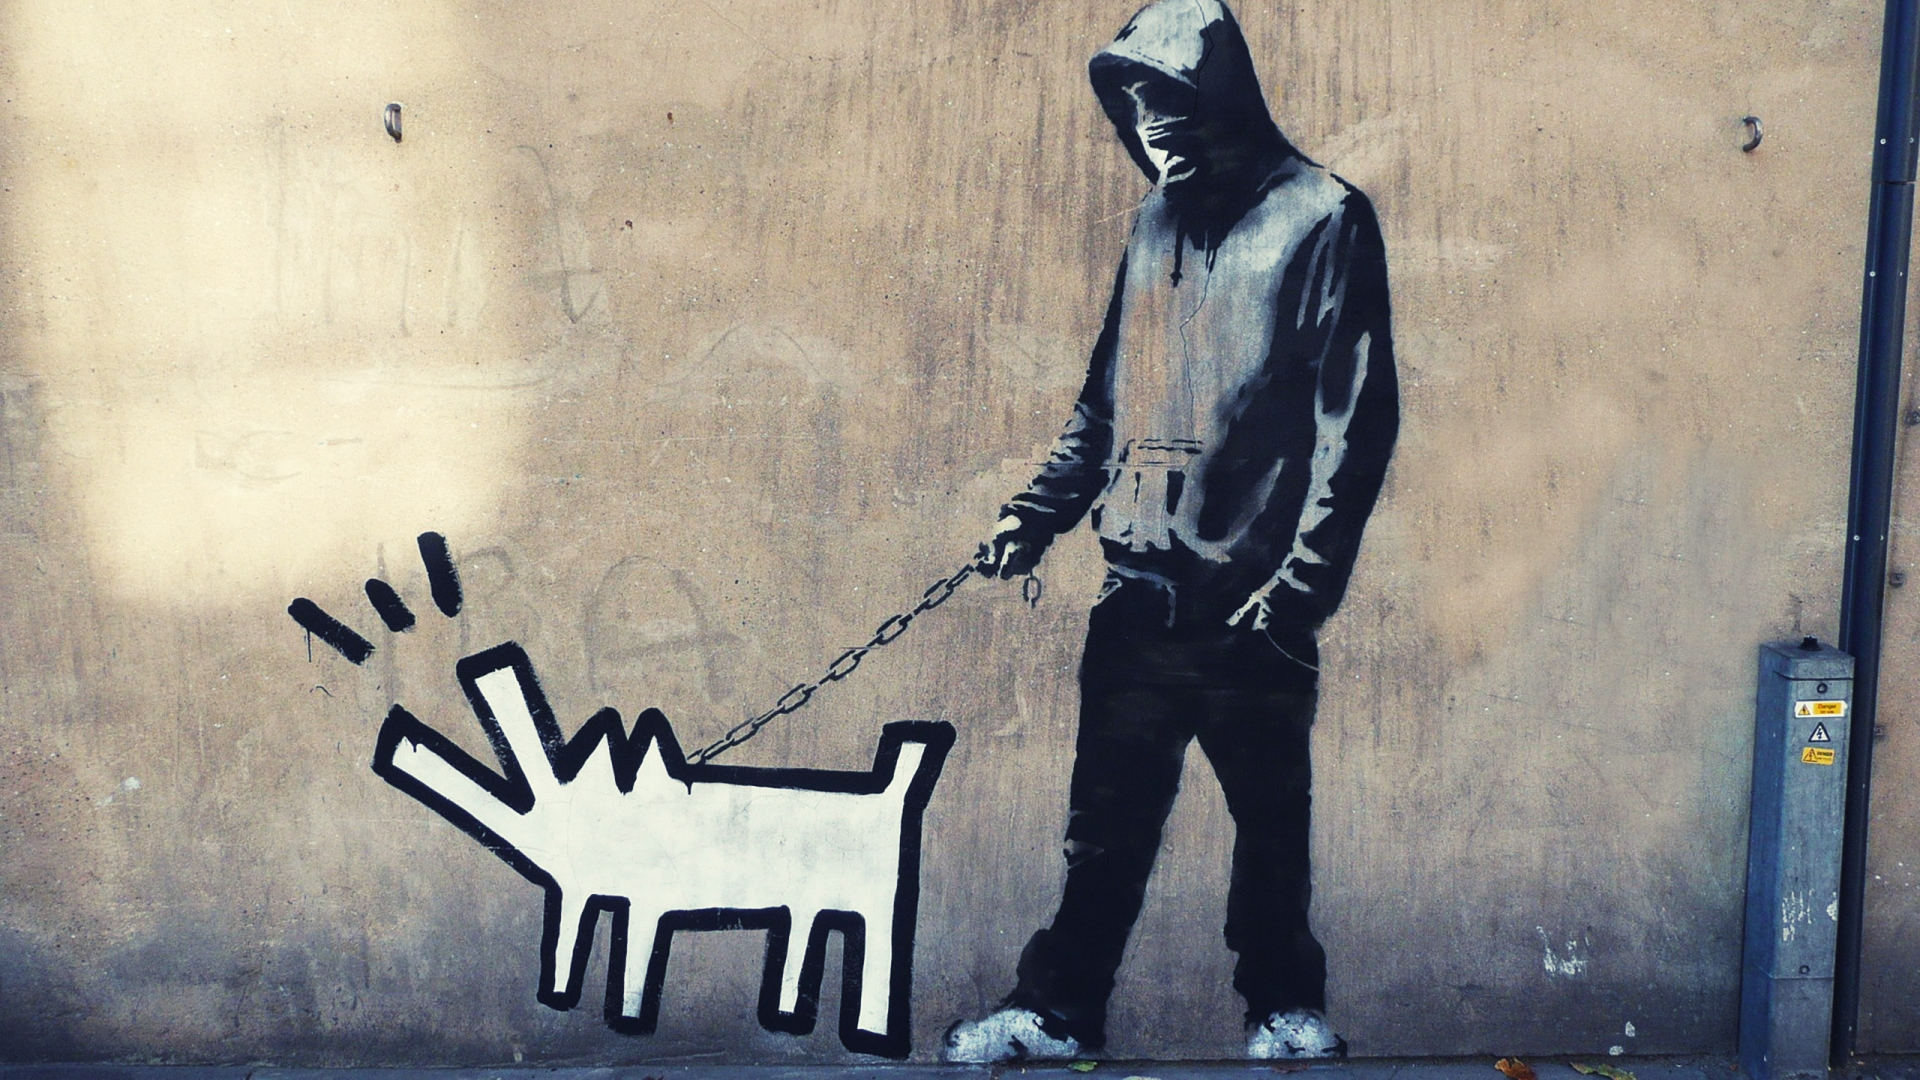 urban graffiti art wallpaper - photo #13